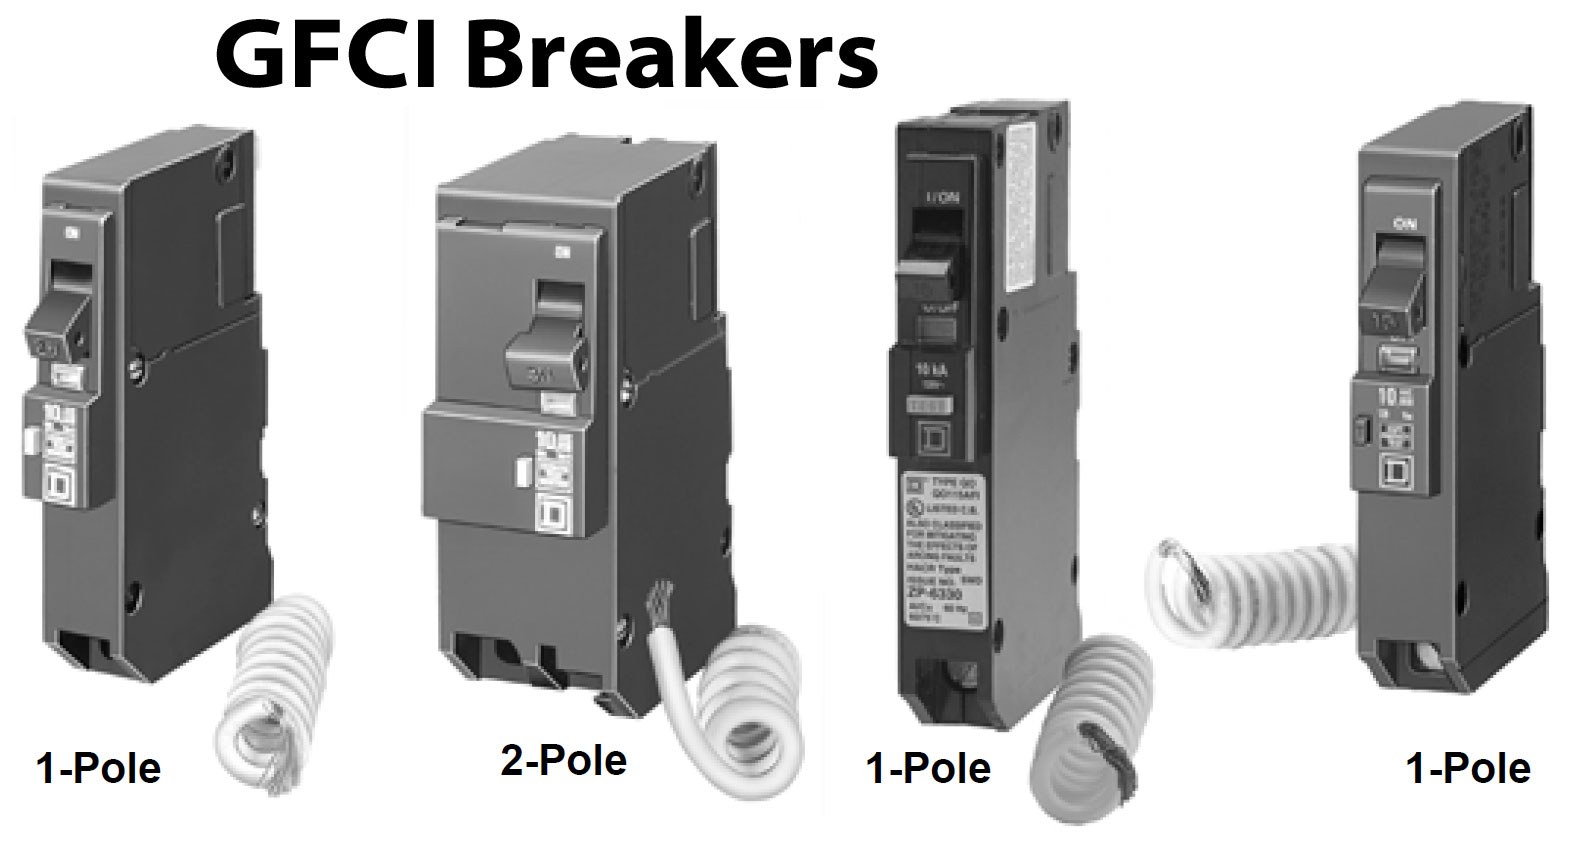 GFCI breakers 1000 how to install and troubleshoot gfci eaton gfci breaker wiring diagram at gsmportal.co